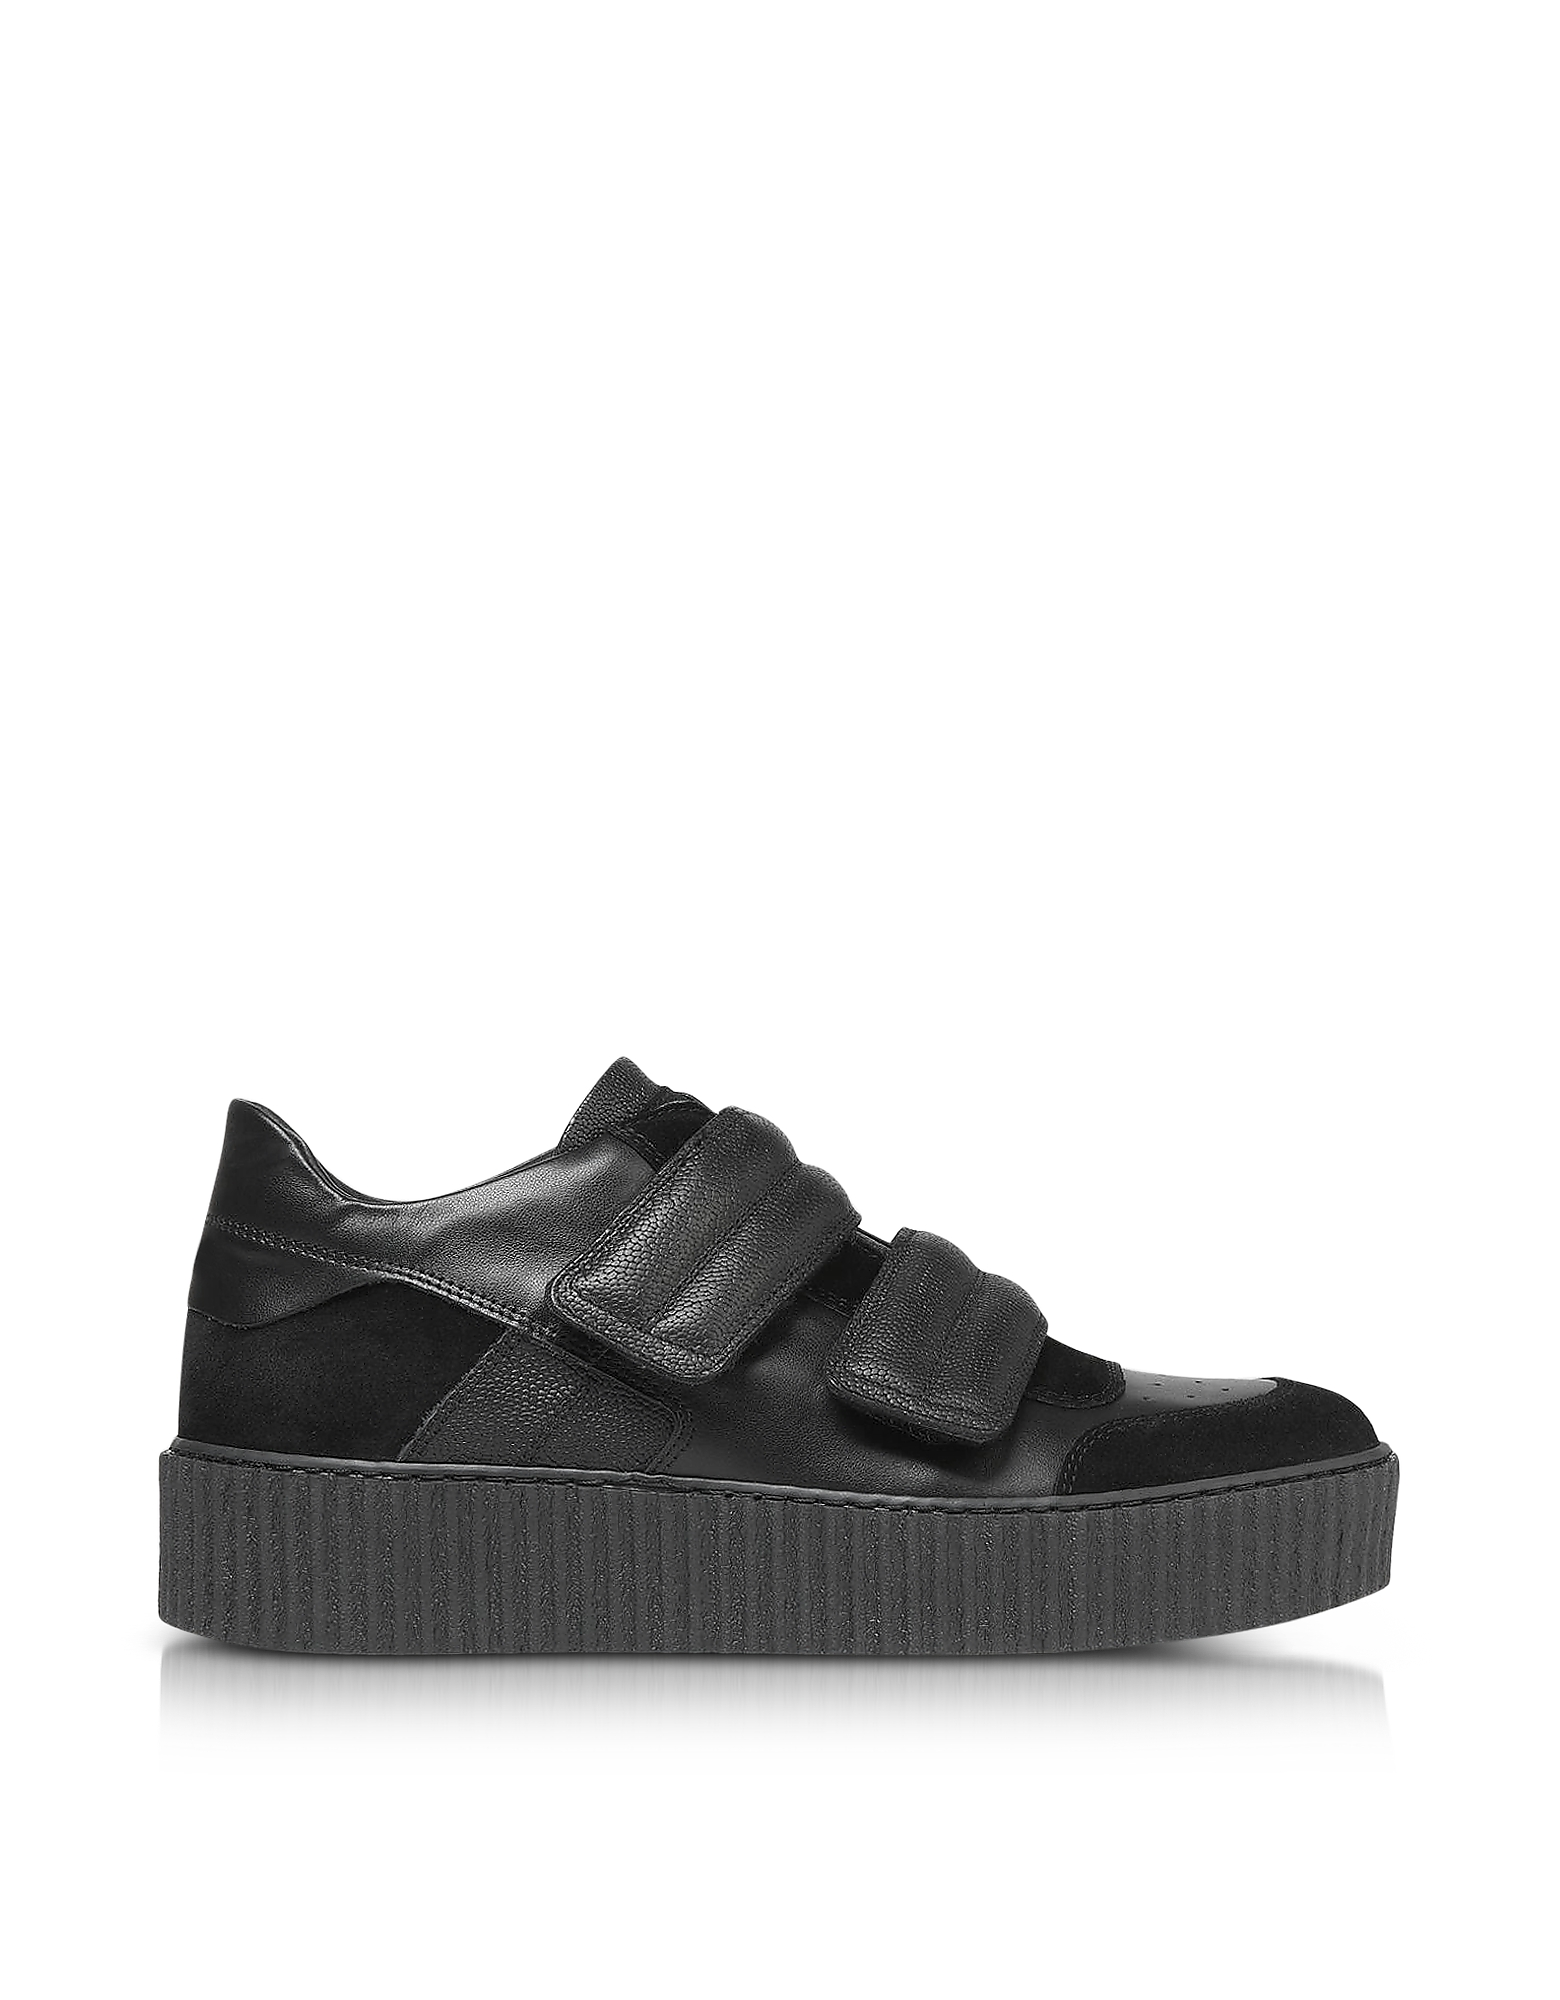 MM6 Maison Martin Margiela Shoes, Black Leather and Suede Women's Sneakers